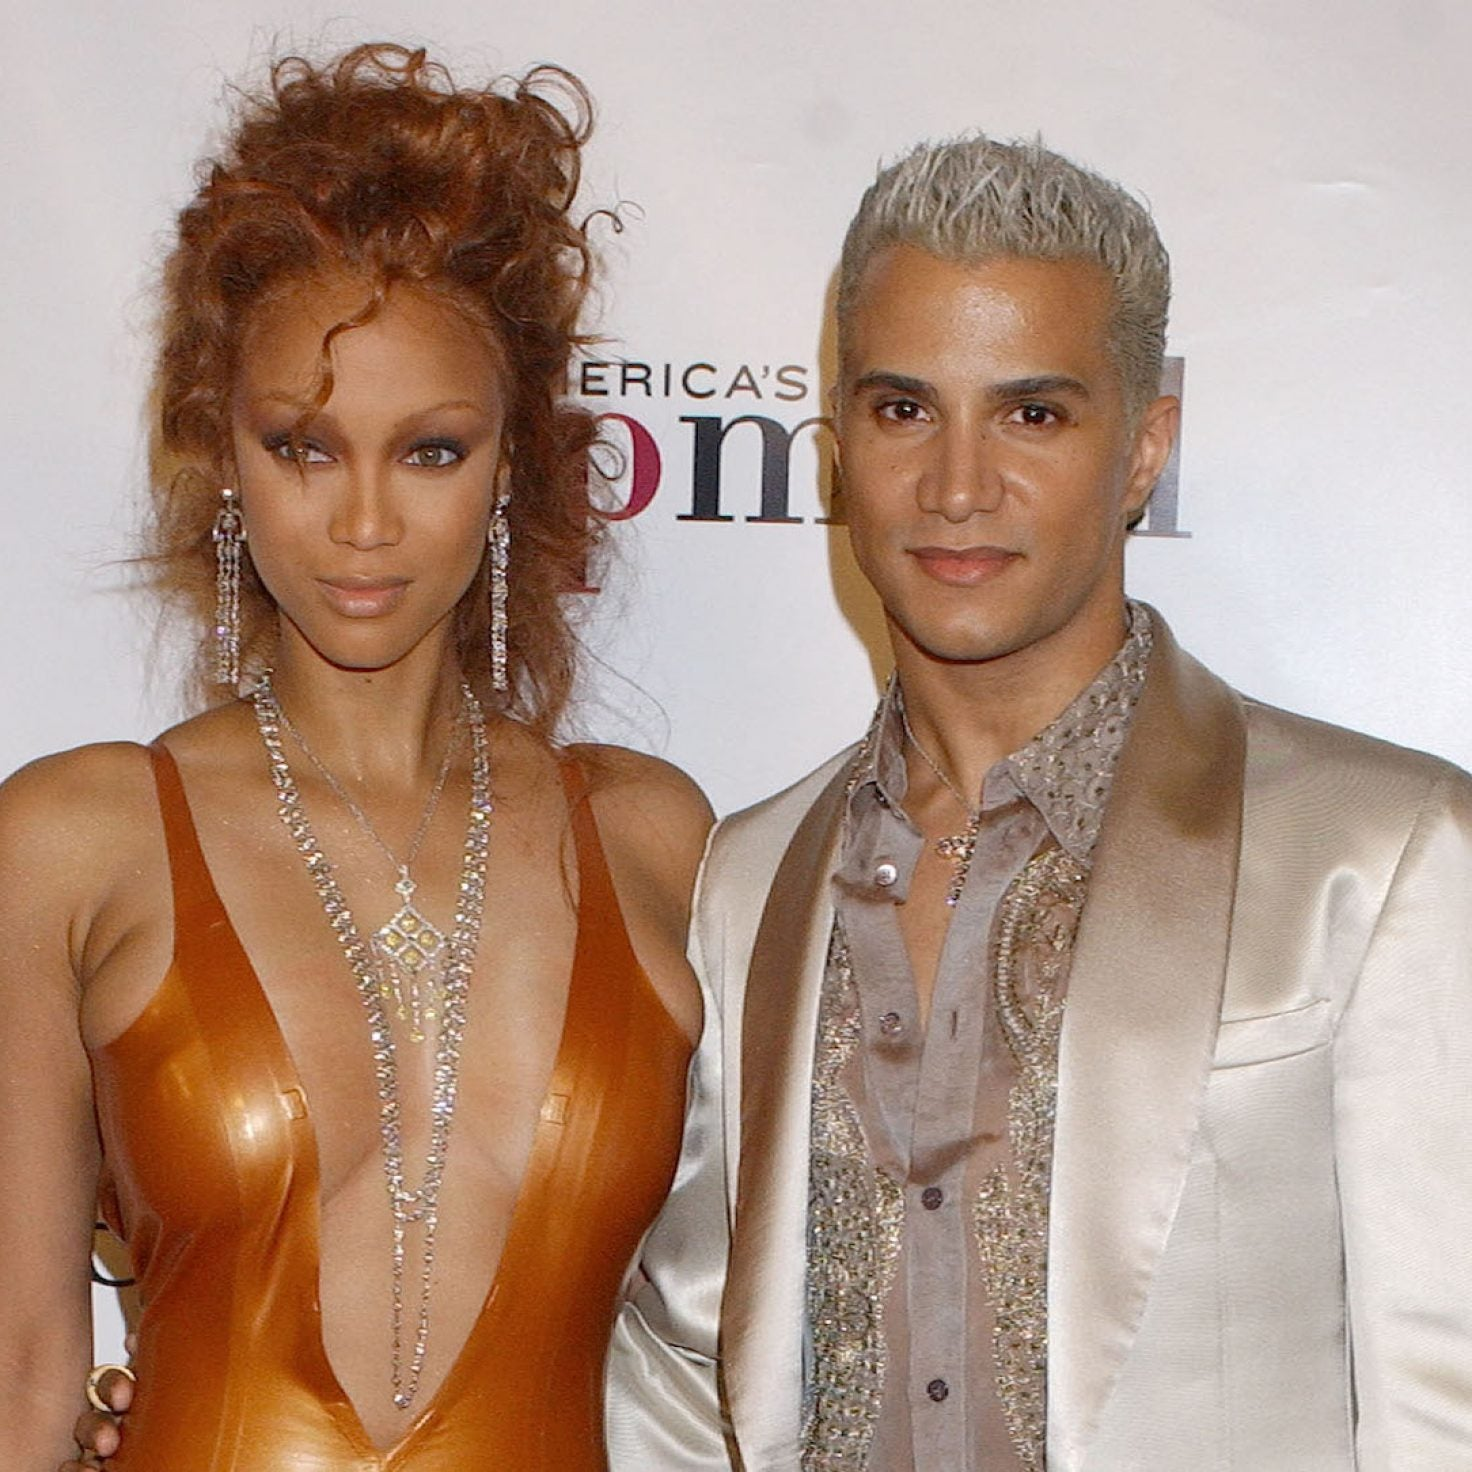 Jay Manuel Reveals 'America's Next Top Model' Ended Friendship With Tyra Banks